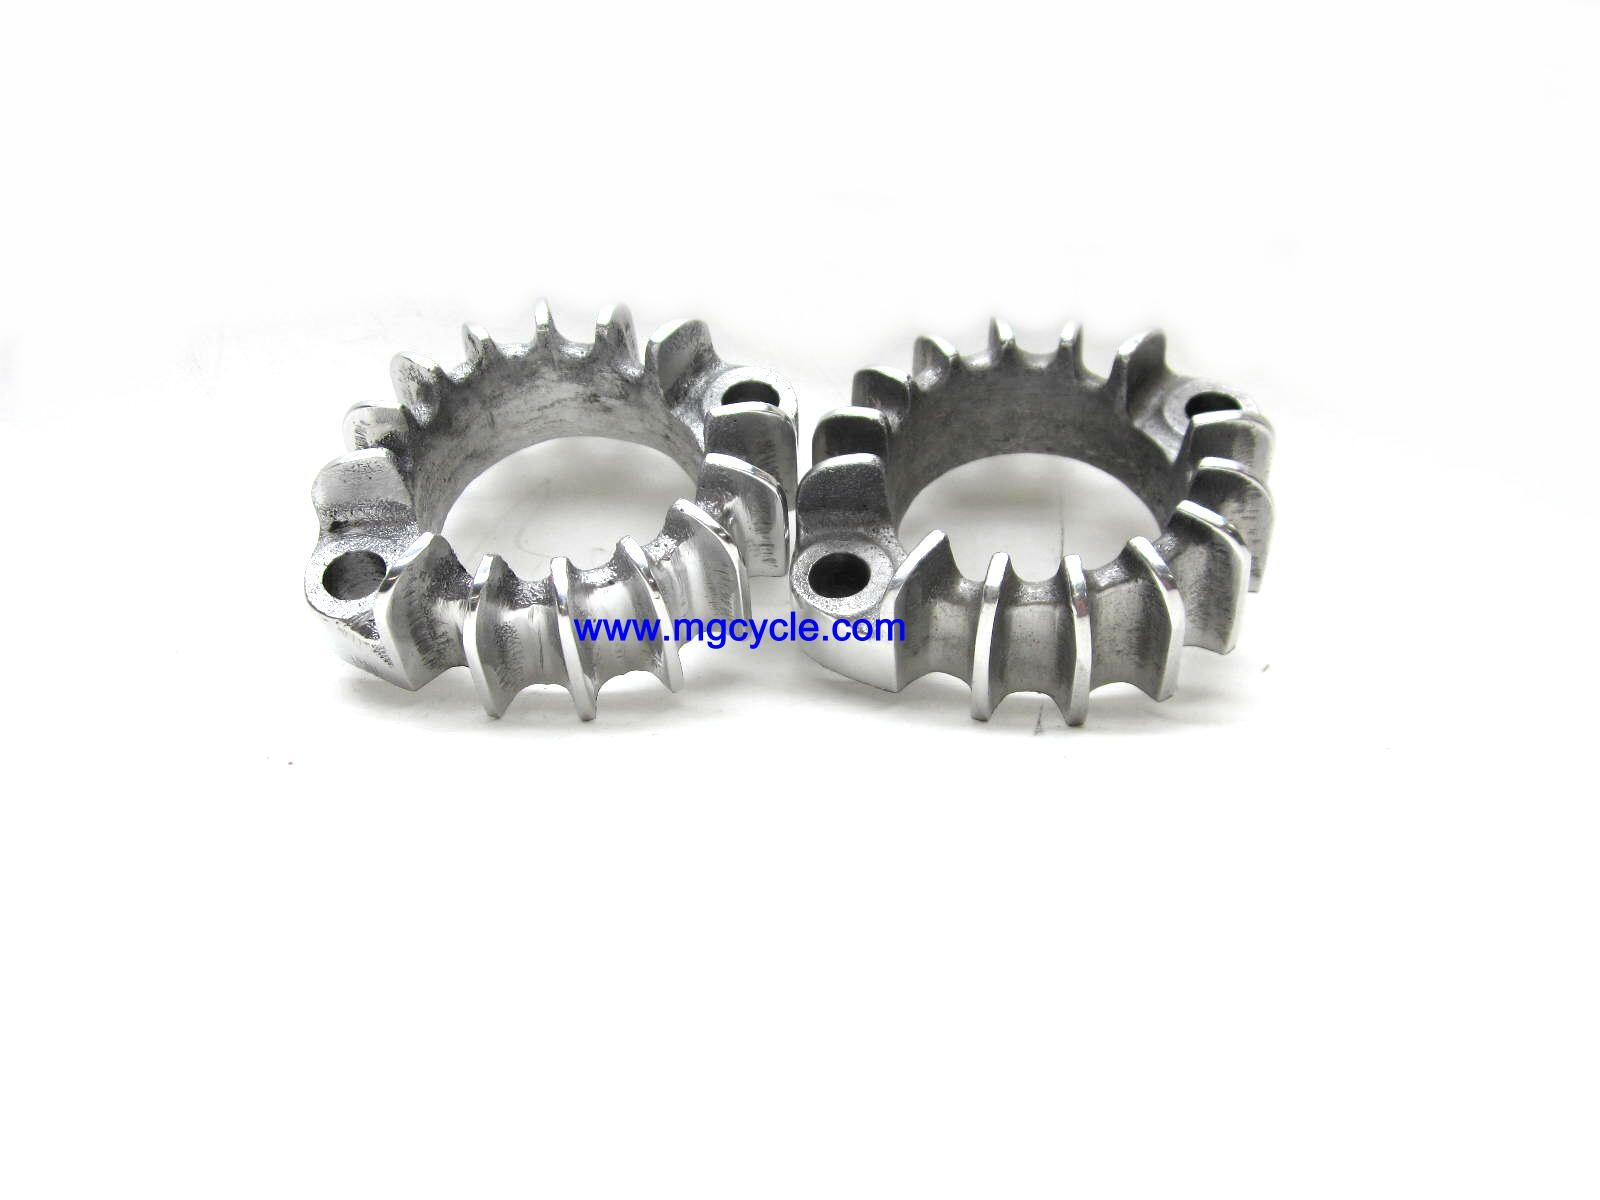 aluminum exhaust flange or clamp with cooling fins